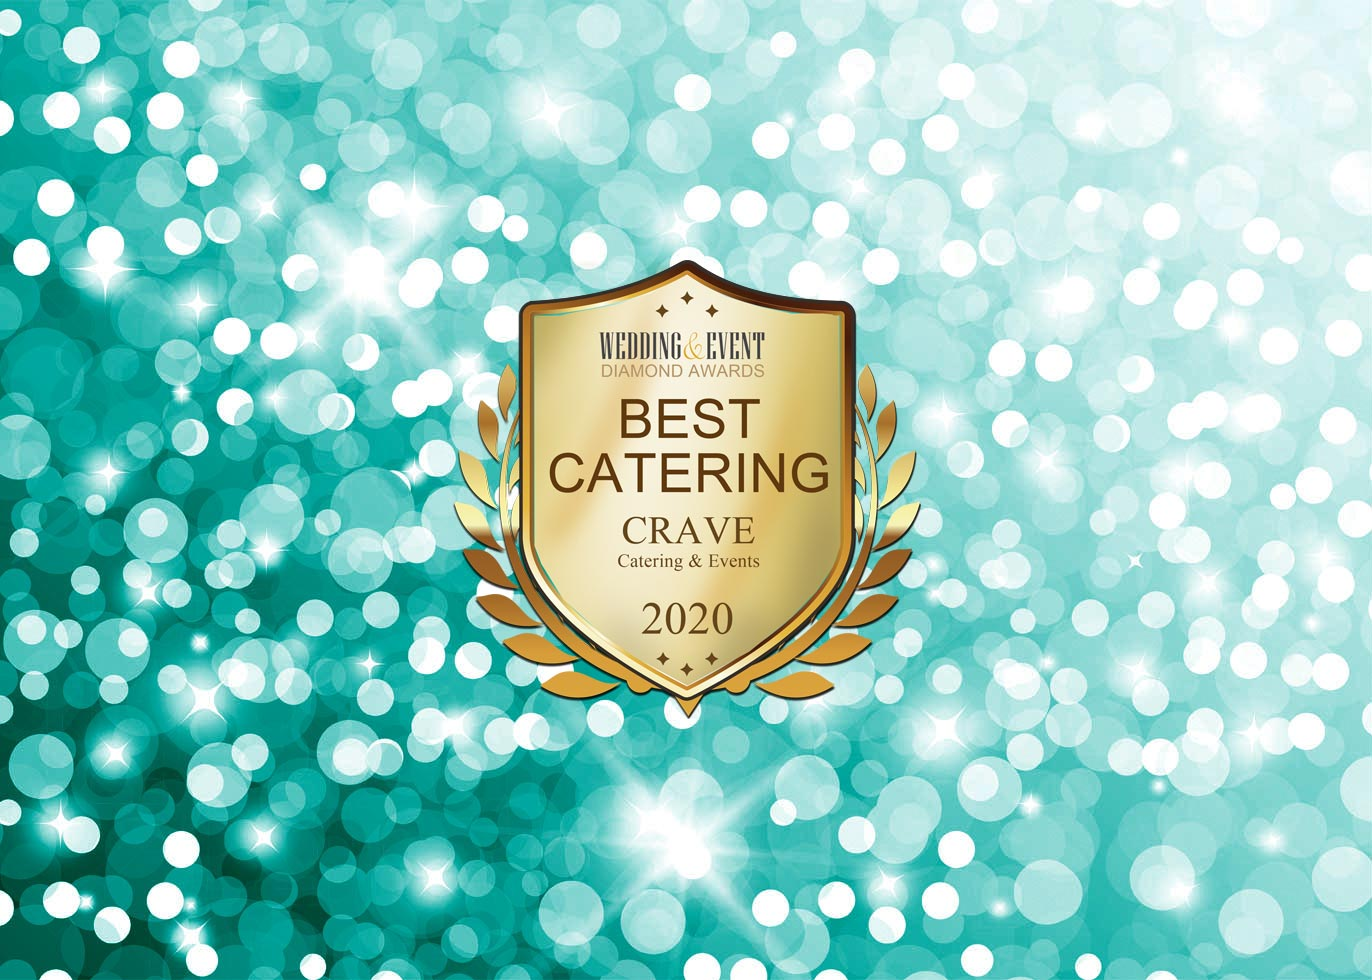 Best Catering in Twin Cities